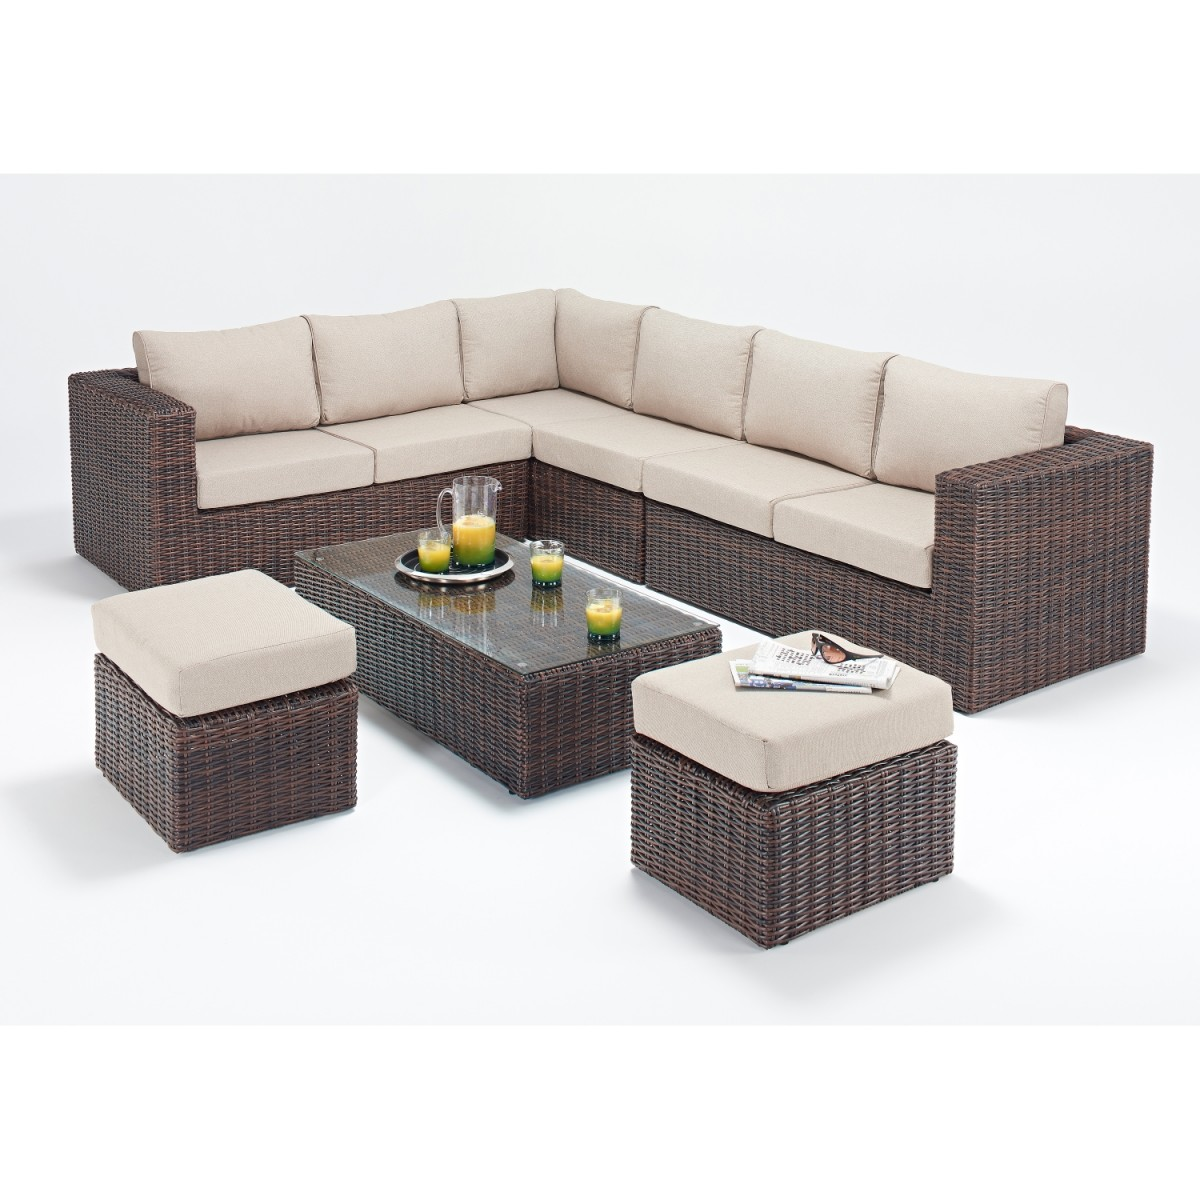 rattan sets windsor large corner sofa set wgf 2702 left hand. Black Bedroom Furniture Sets. Home Design Ideas